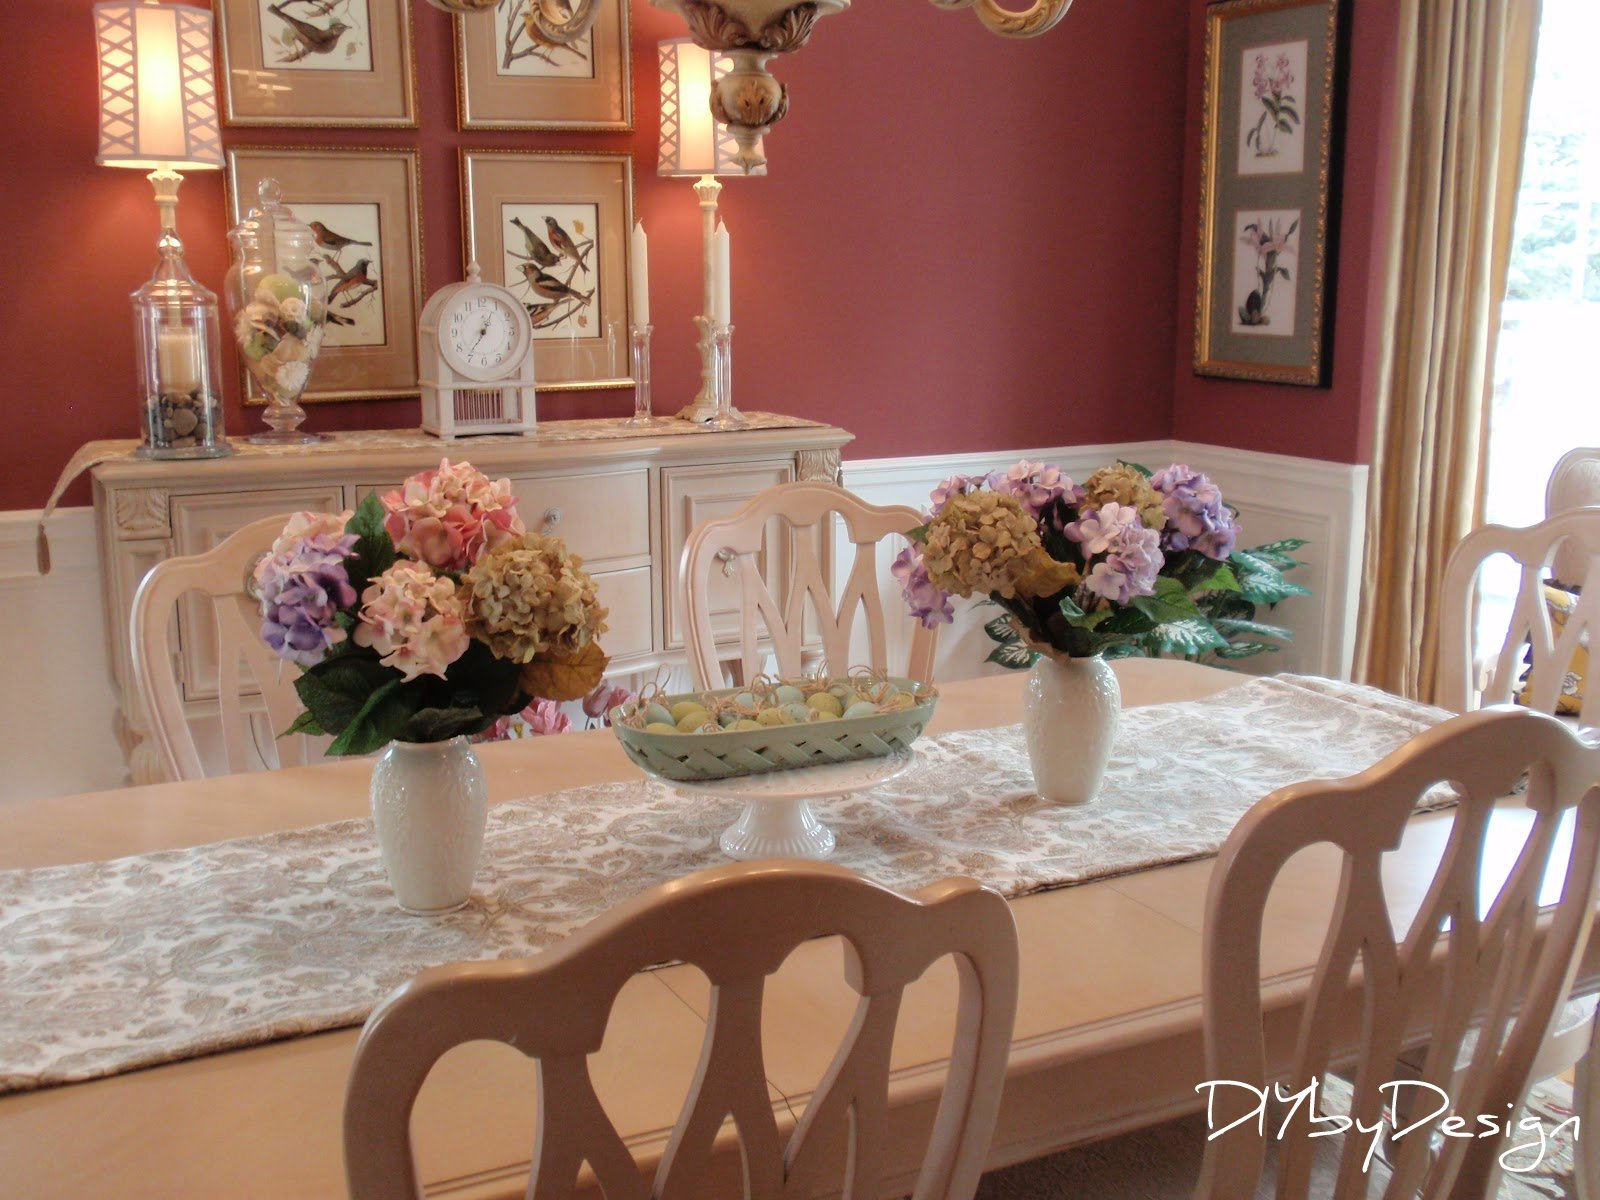 DIY by Design: Springing up the Dining Room